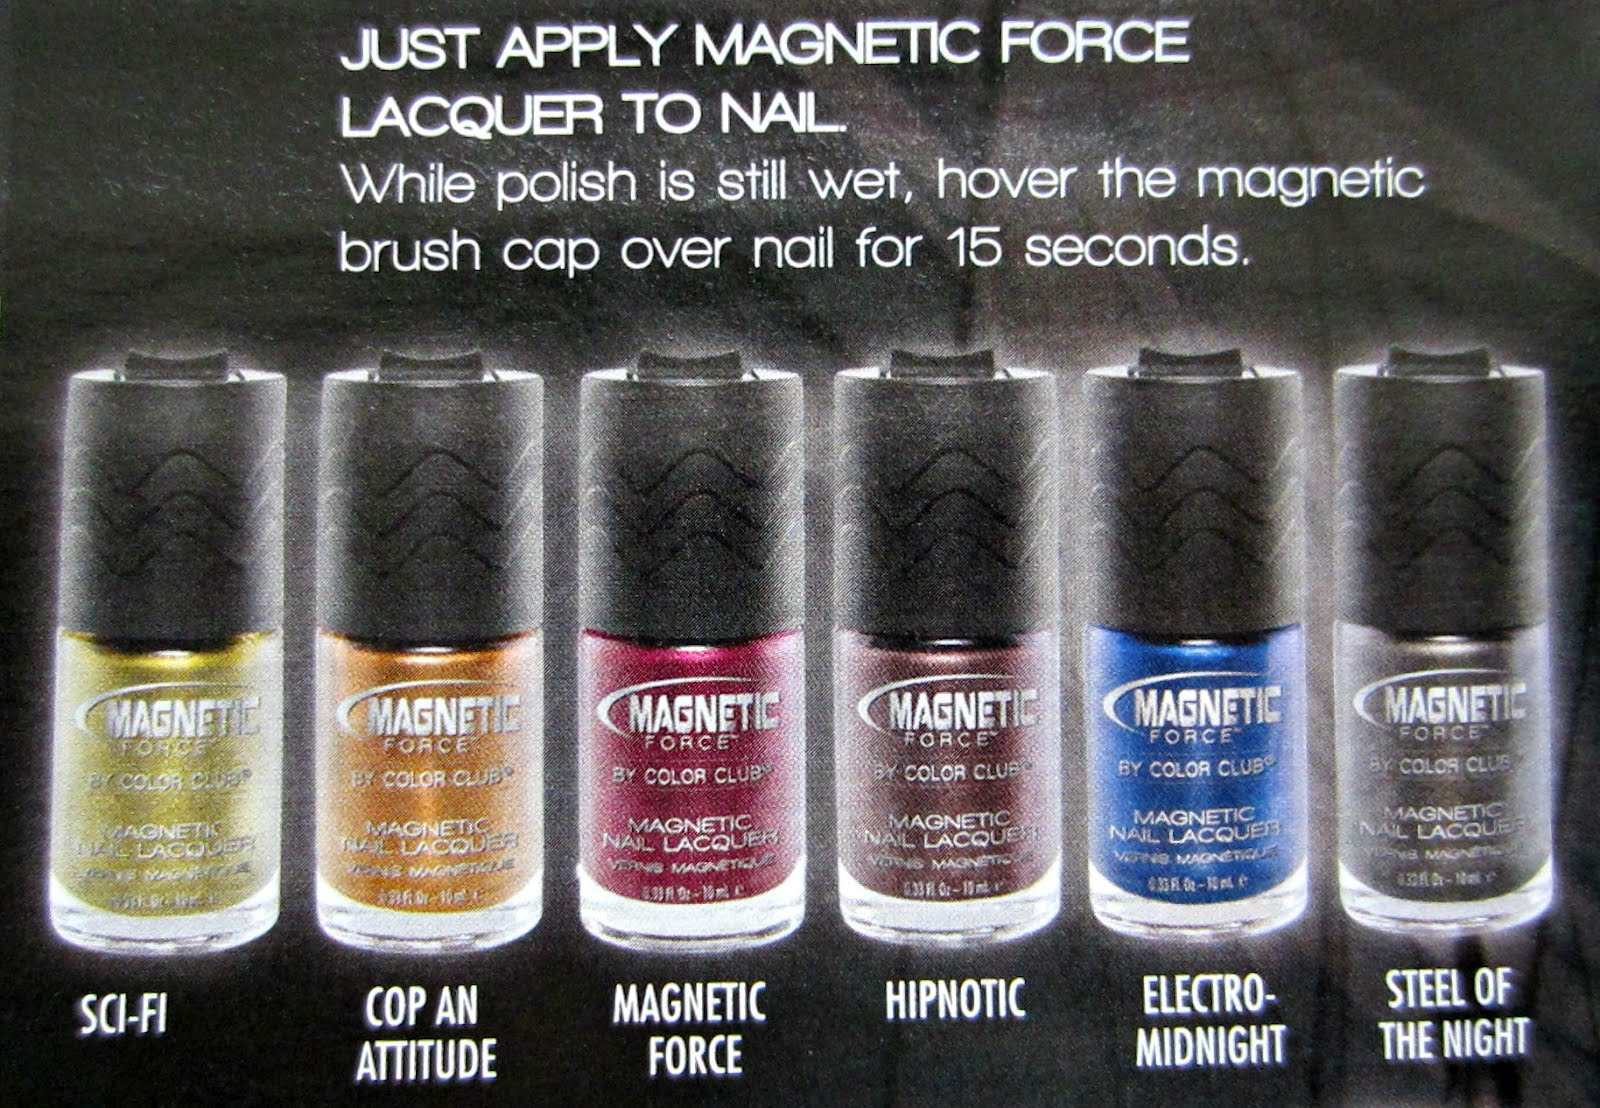 Color Club Magnetic Force: Coming February 2012 | Body & Soul